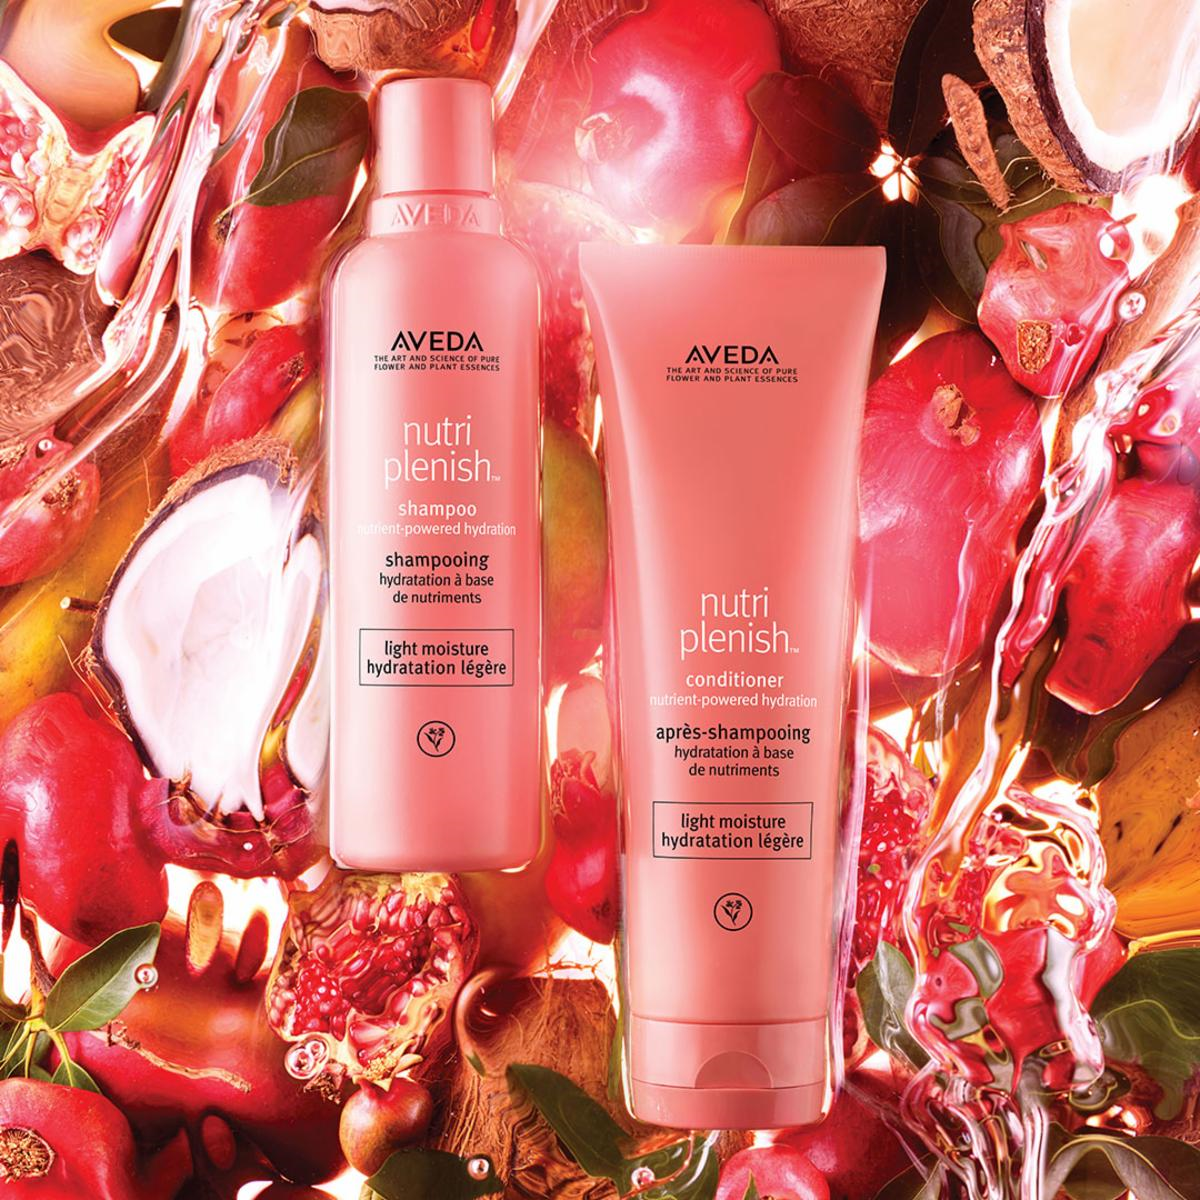 Aveda introduces Nutriplenish!